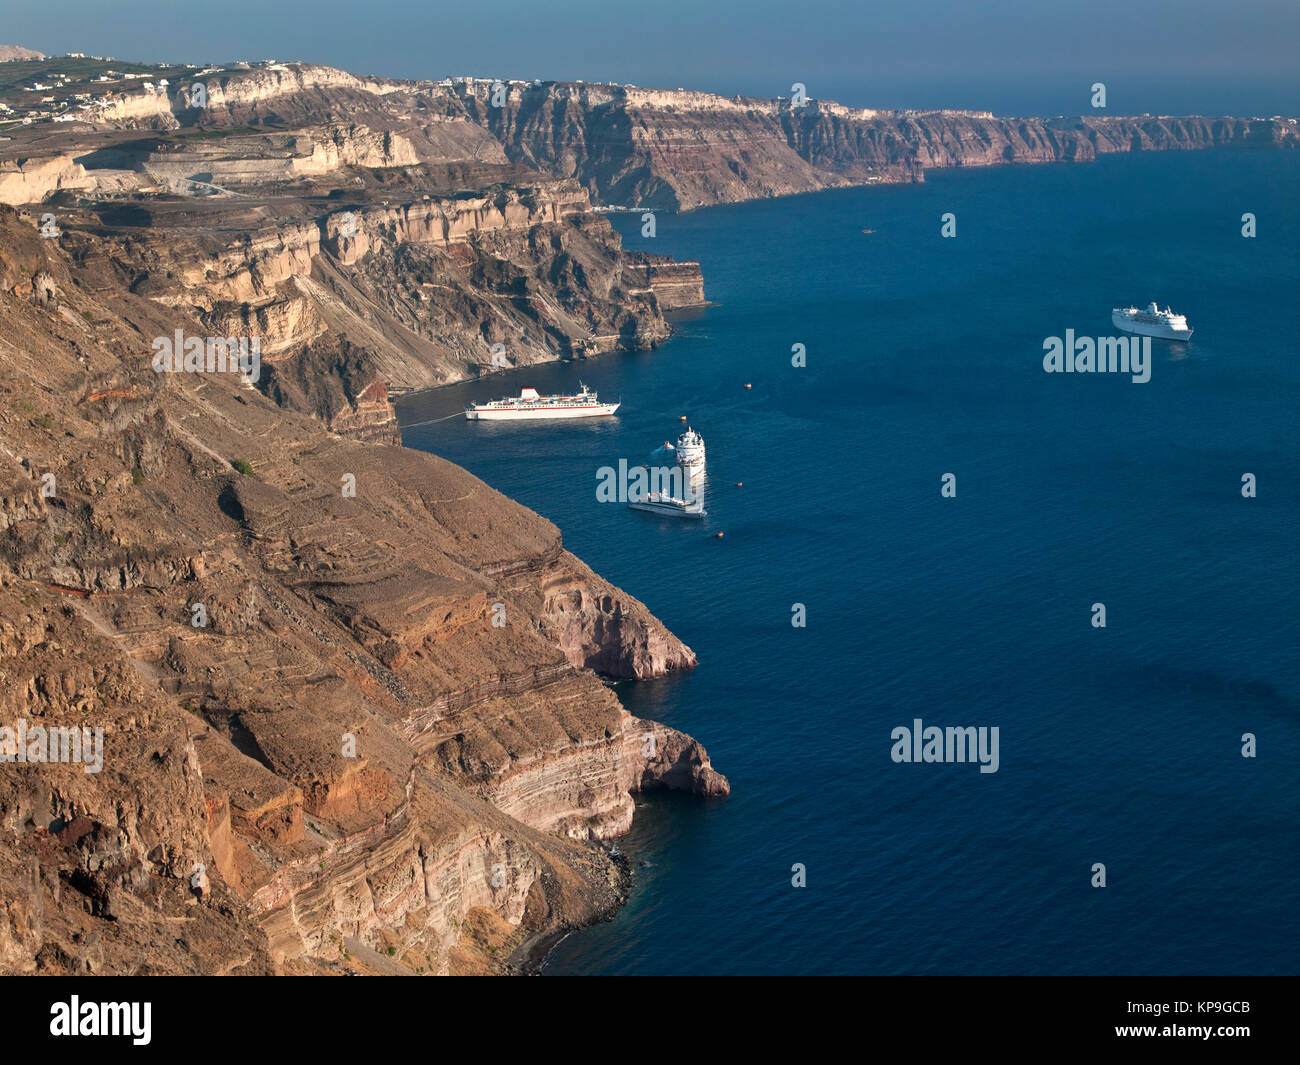 Cruise ships at the Greek volcanic island of Santorini in the Aegean Sea off the coast of mainland Greece - Stock Image